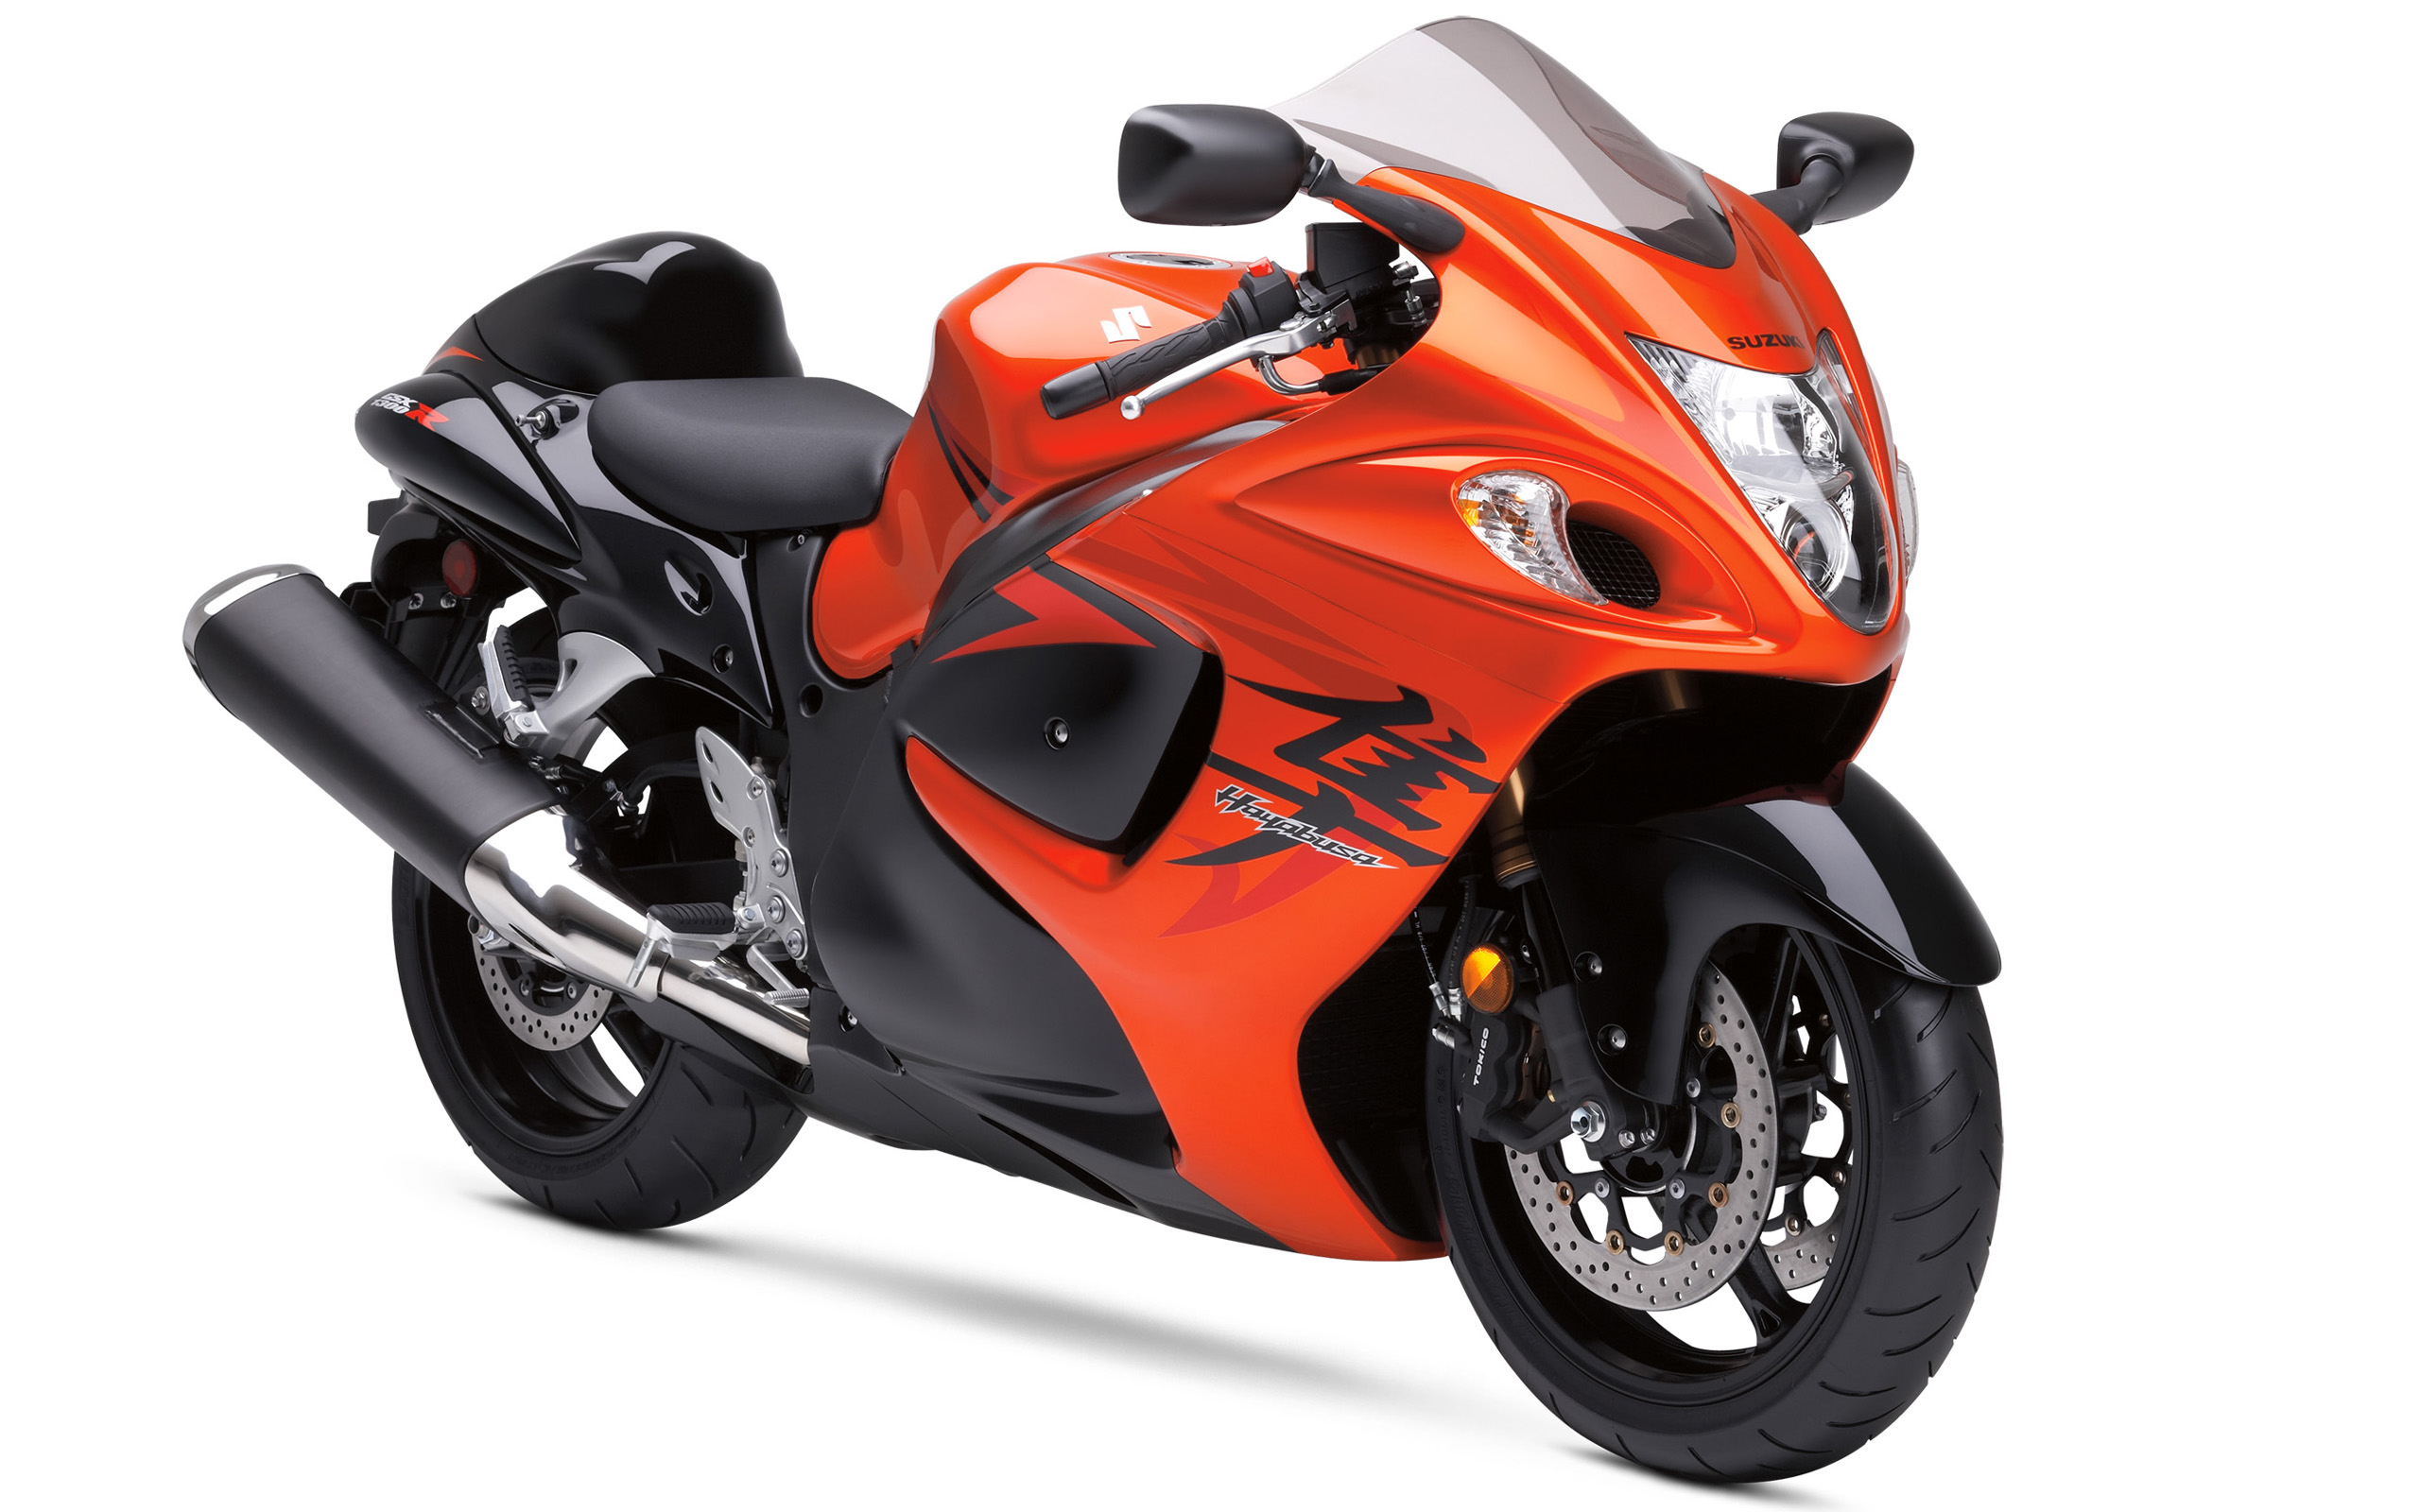 Suzuki Hayabusa Orange Bike 553.05 Kb